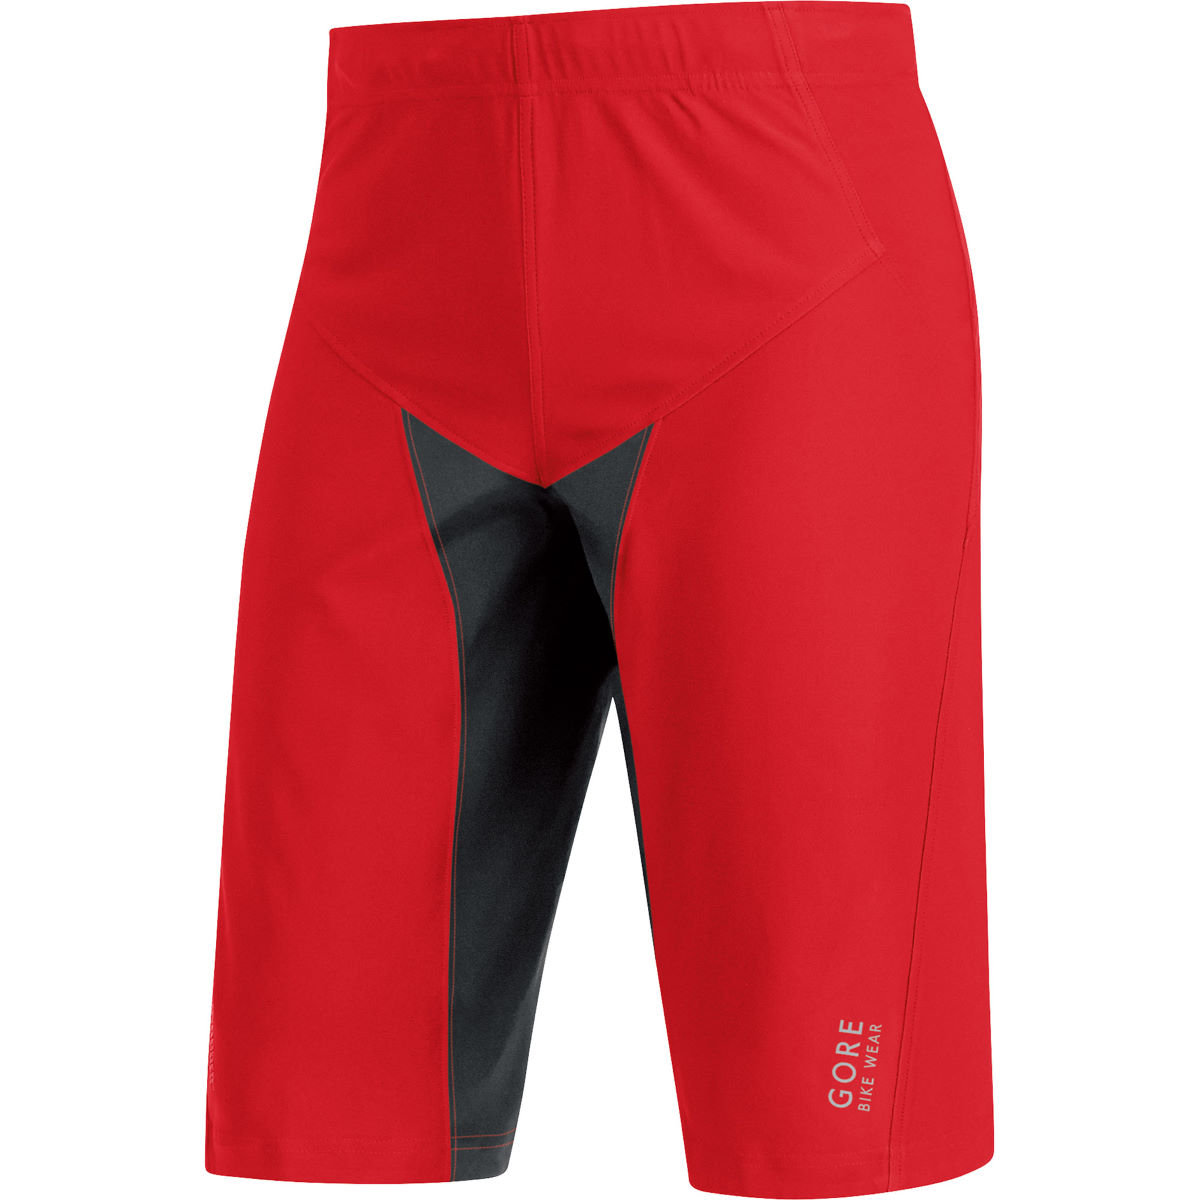 Short Gore Bike Wear Alp-X Pro Windstopper Softshell (PE15) - XXL Rouge/Noir Shorts VTT